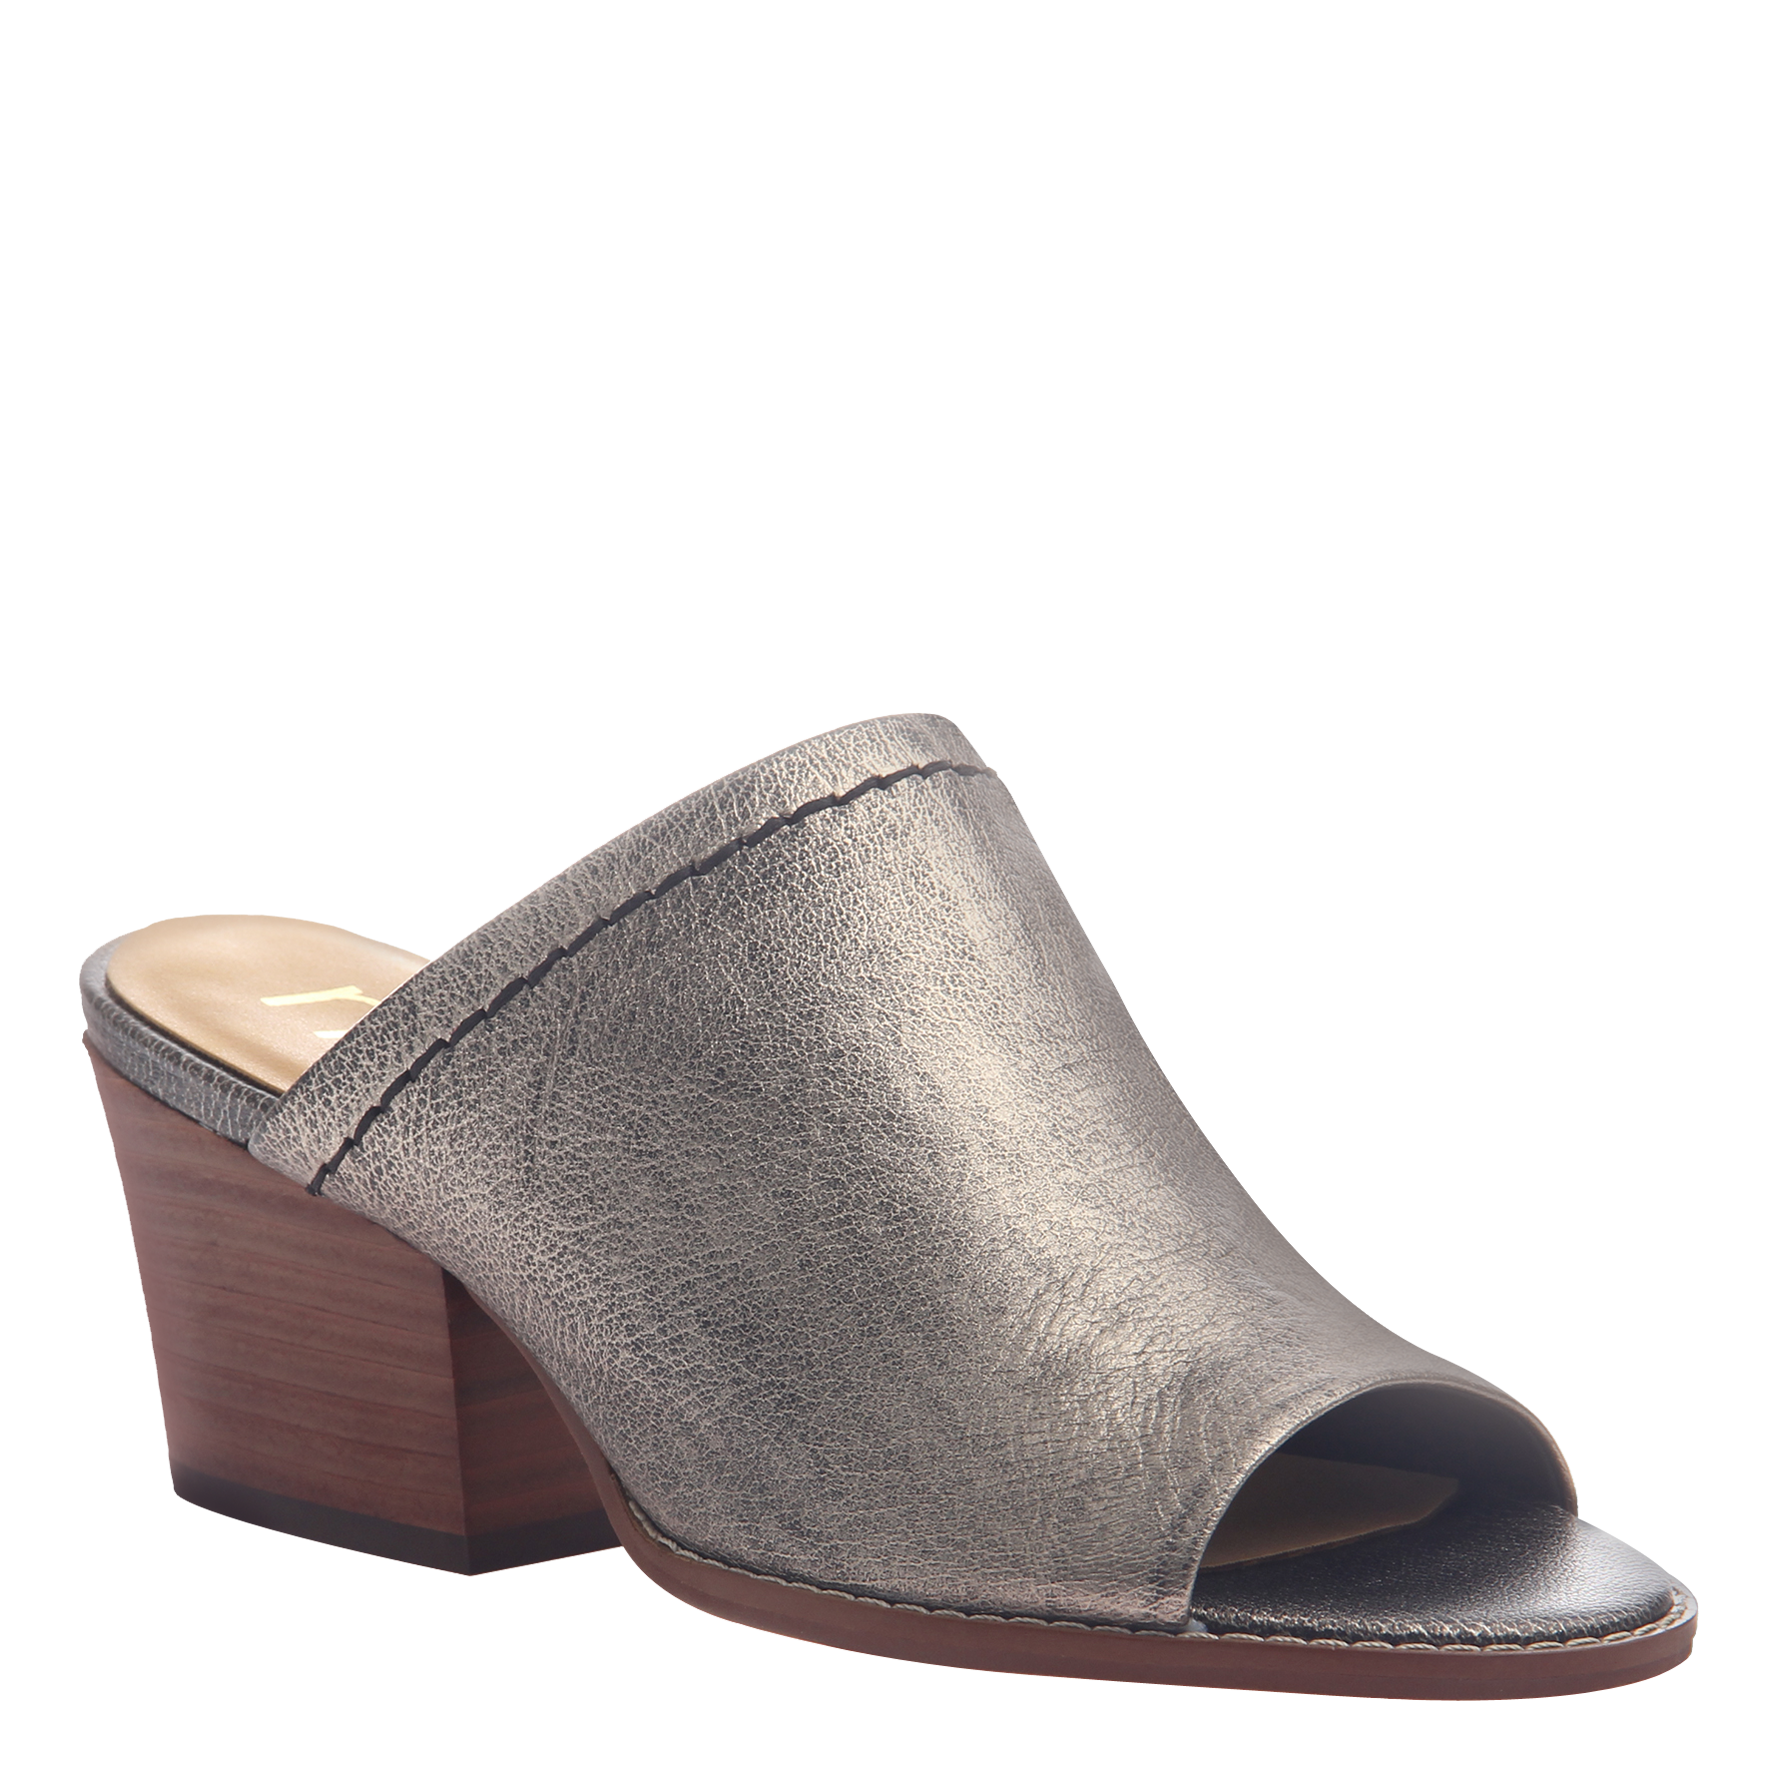 Womens mule slide Carolina in Pewter